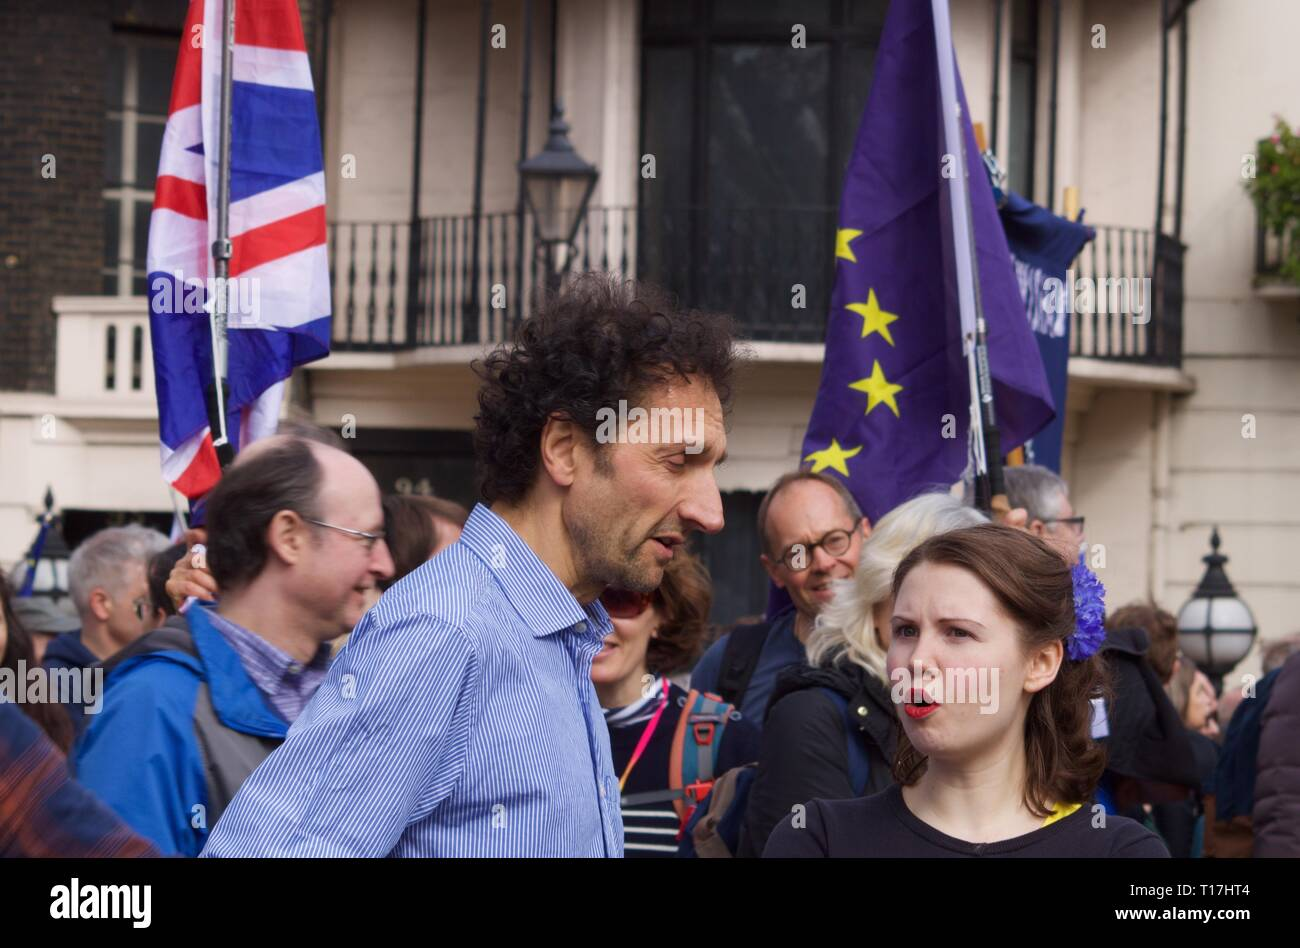 Older man speaking with younger woman at the anti-Brexit march in London on 23 March 2019 - Stock Image